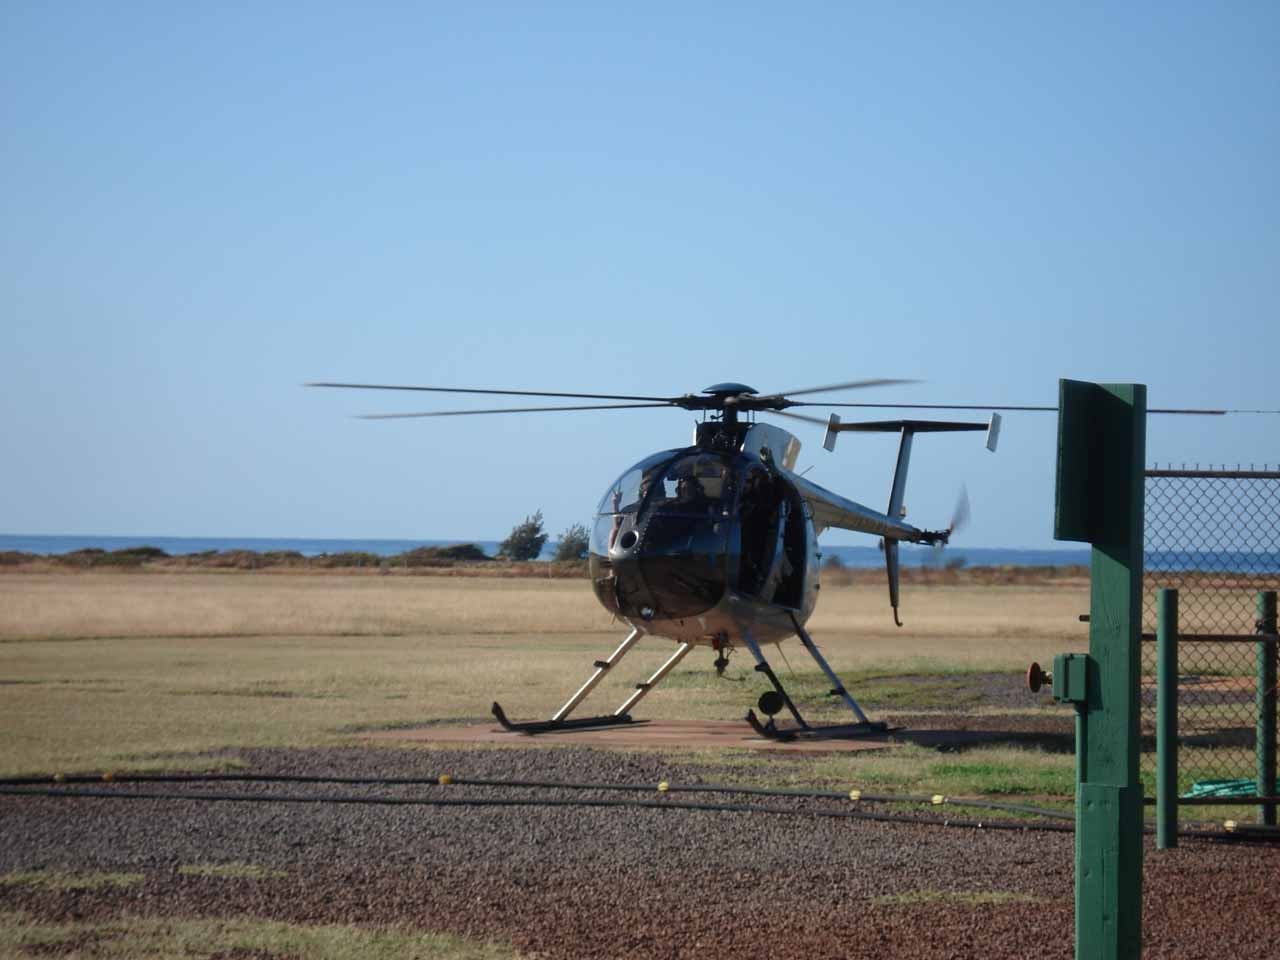 The chopper that we flew on